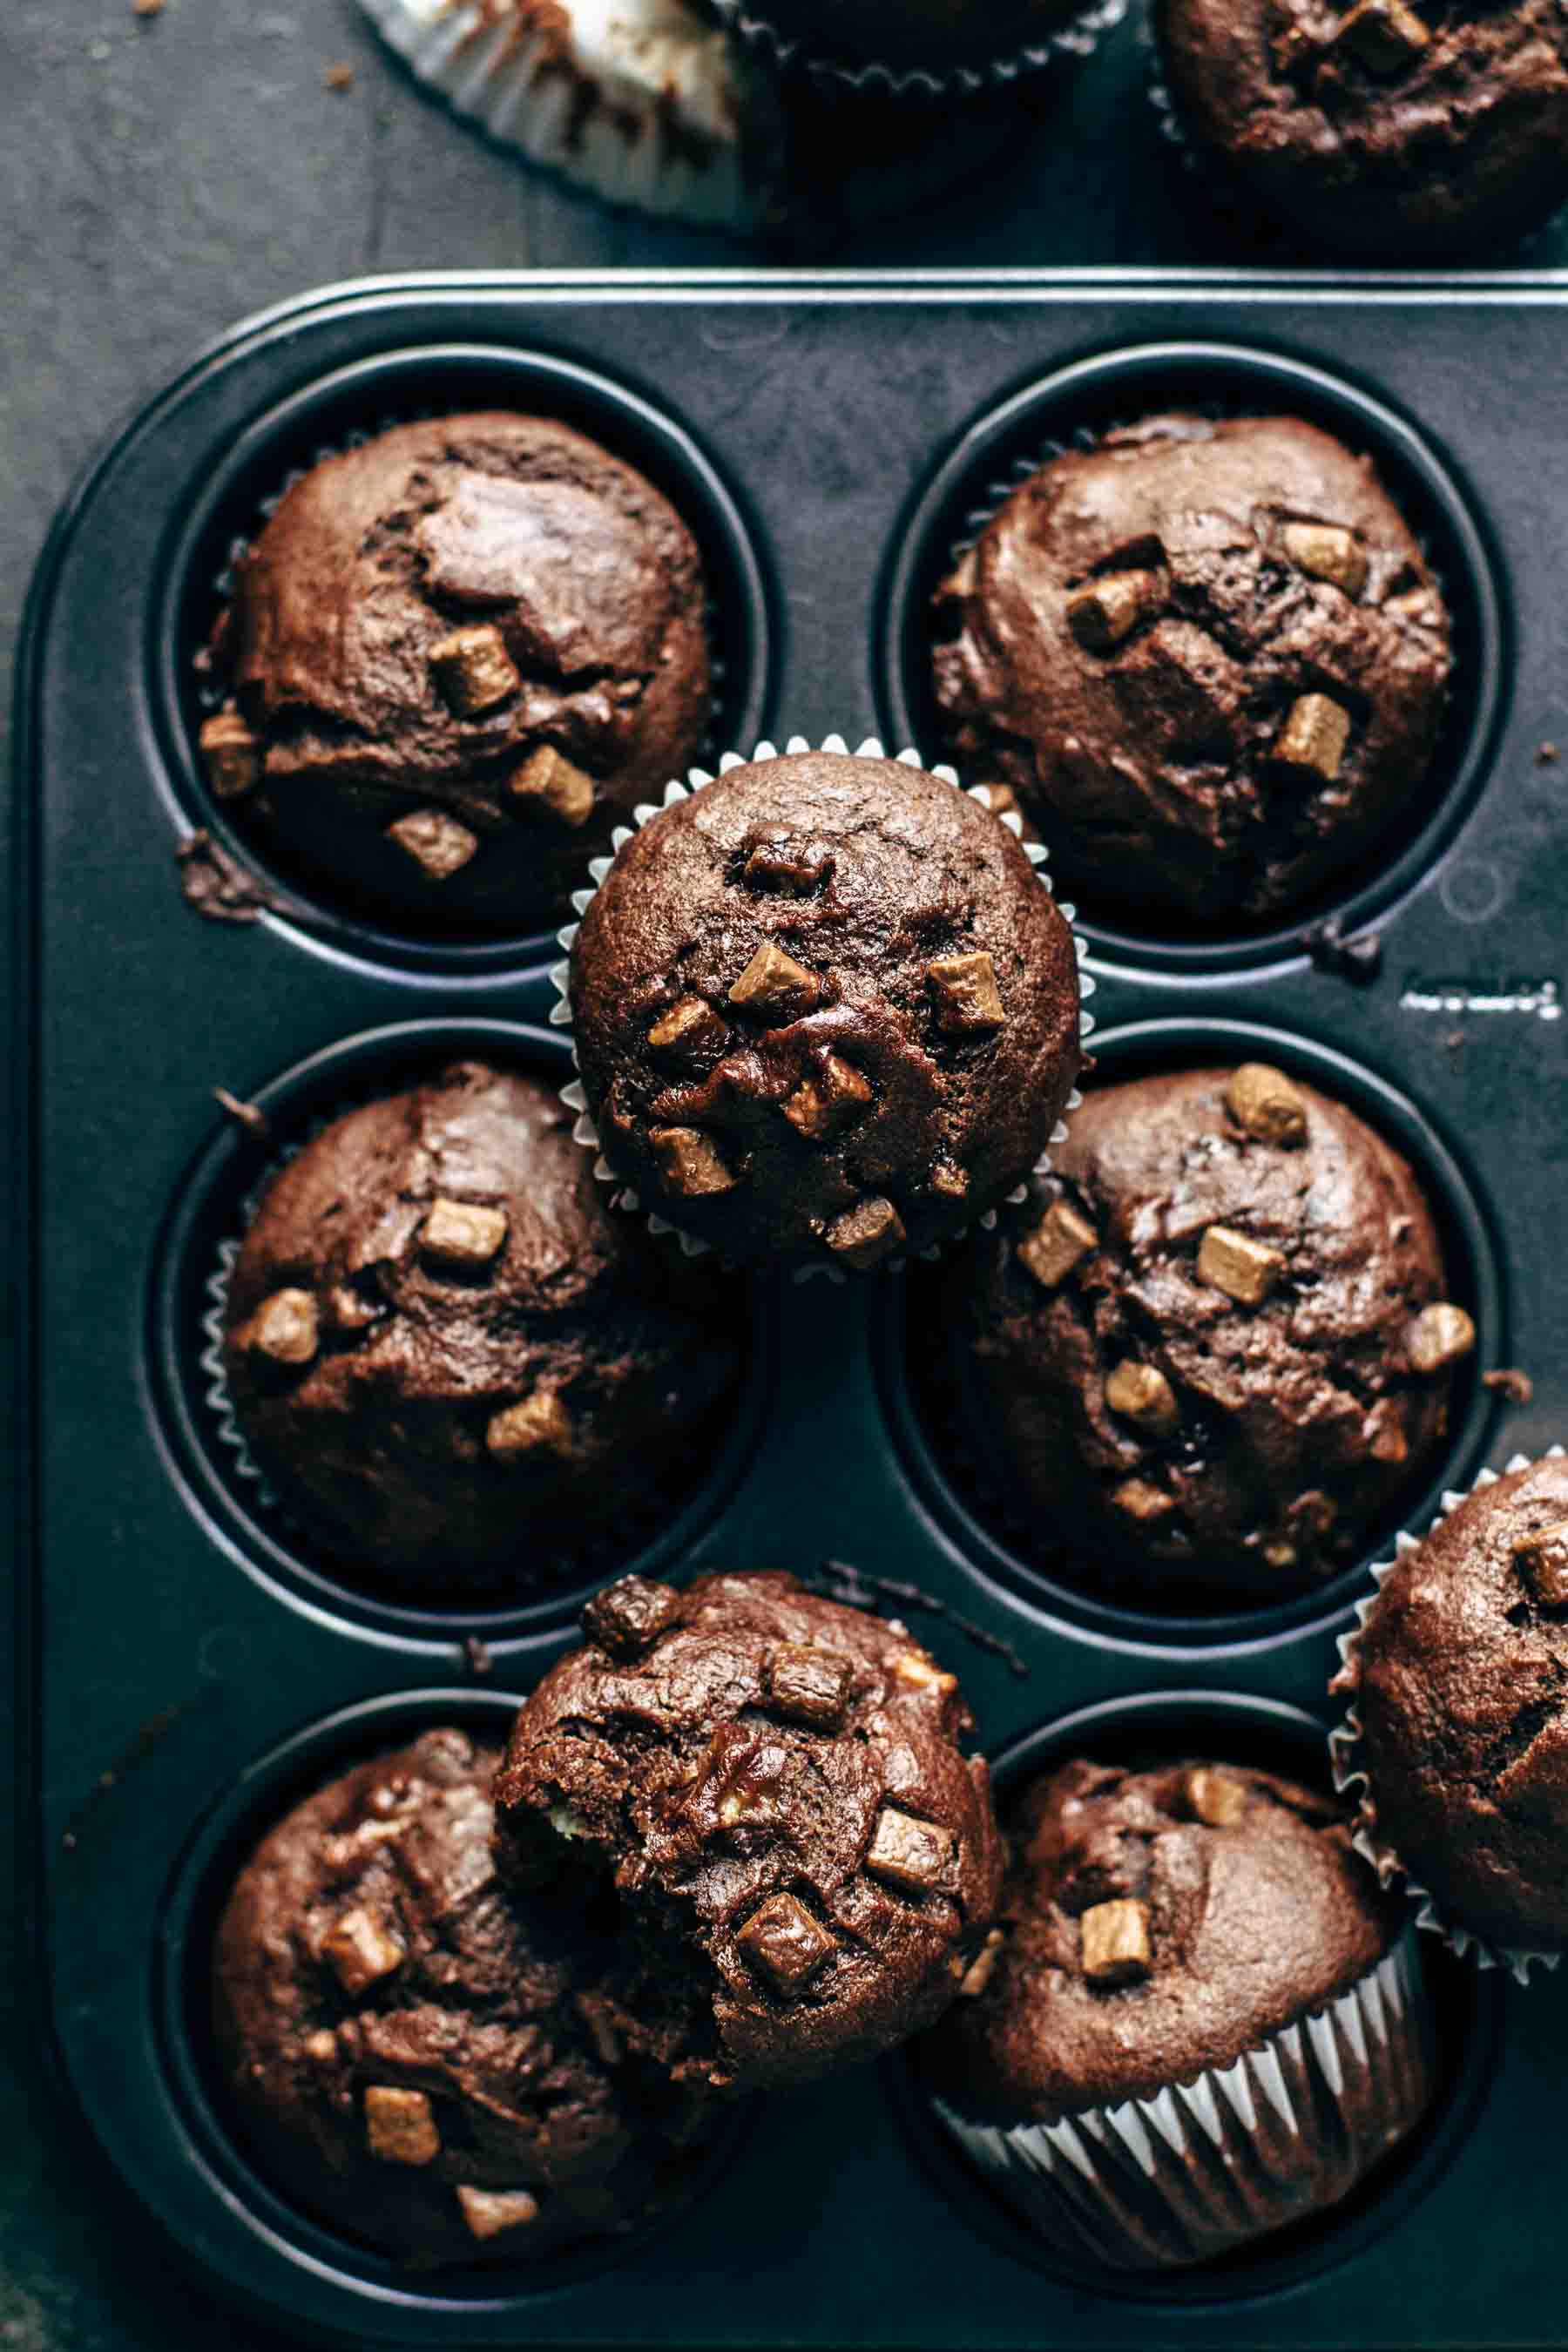 Soft and Moist Banana Chocolate Muffins Recipe